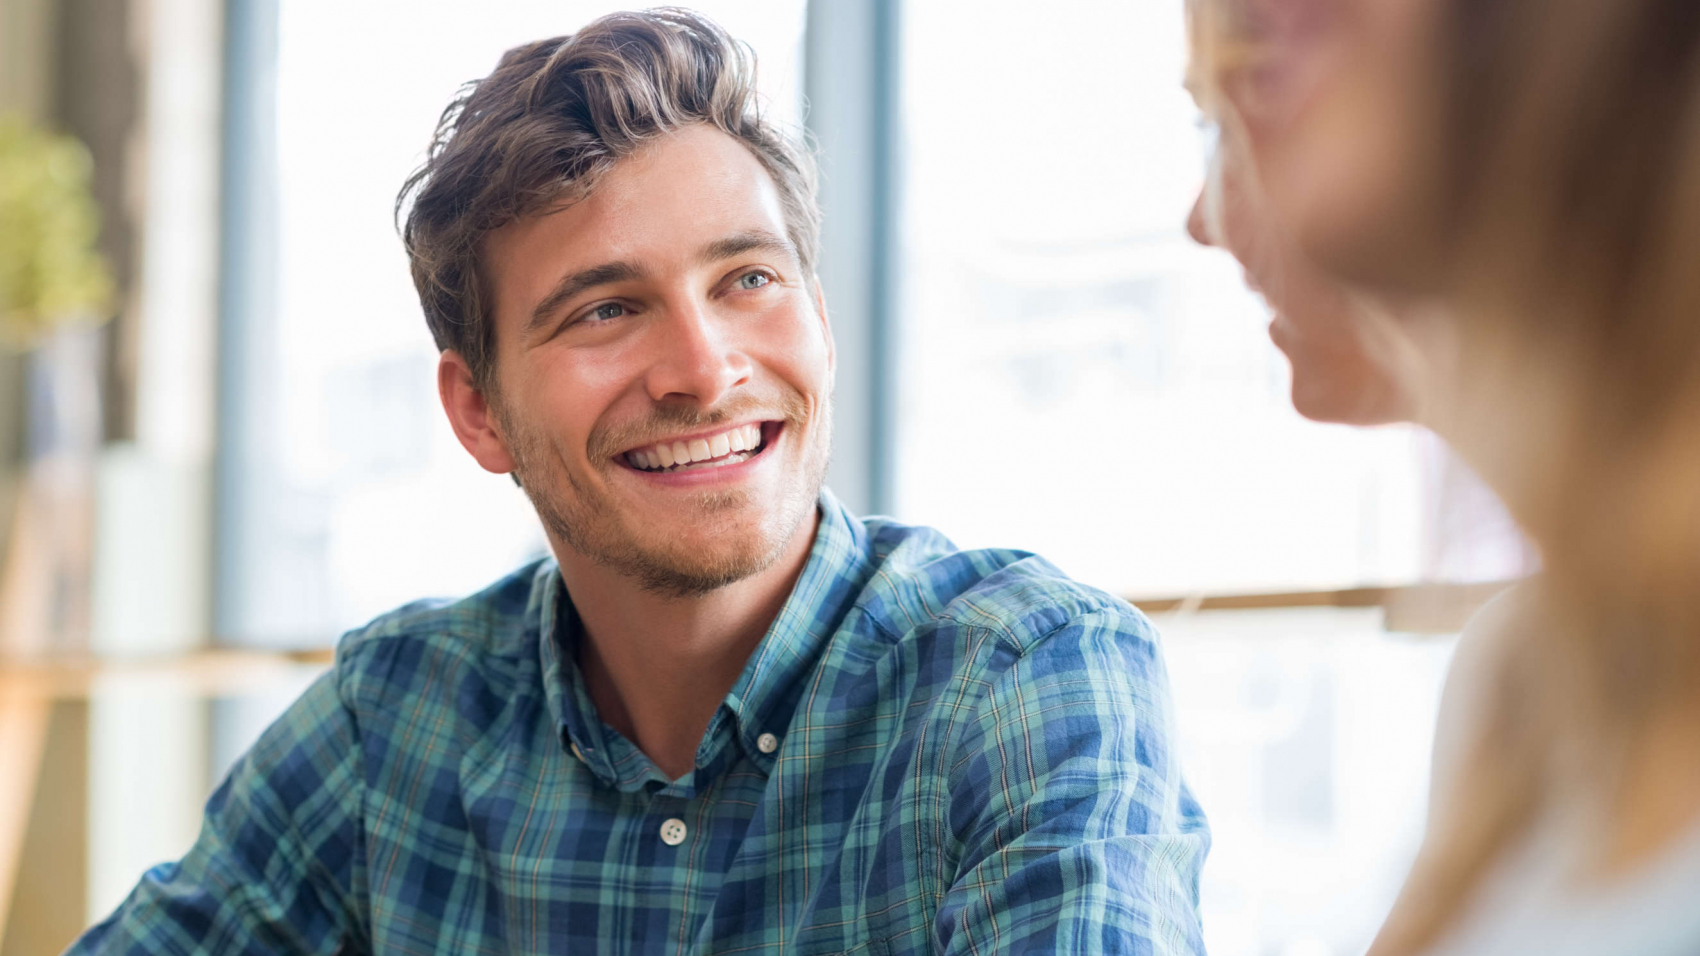 Closeup of cheerful young man in conversation with woman in cafeteria. Happy young couple talking and smiling sitting at table. Handsome guy smiling with his friends.